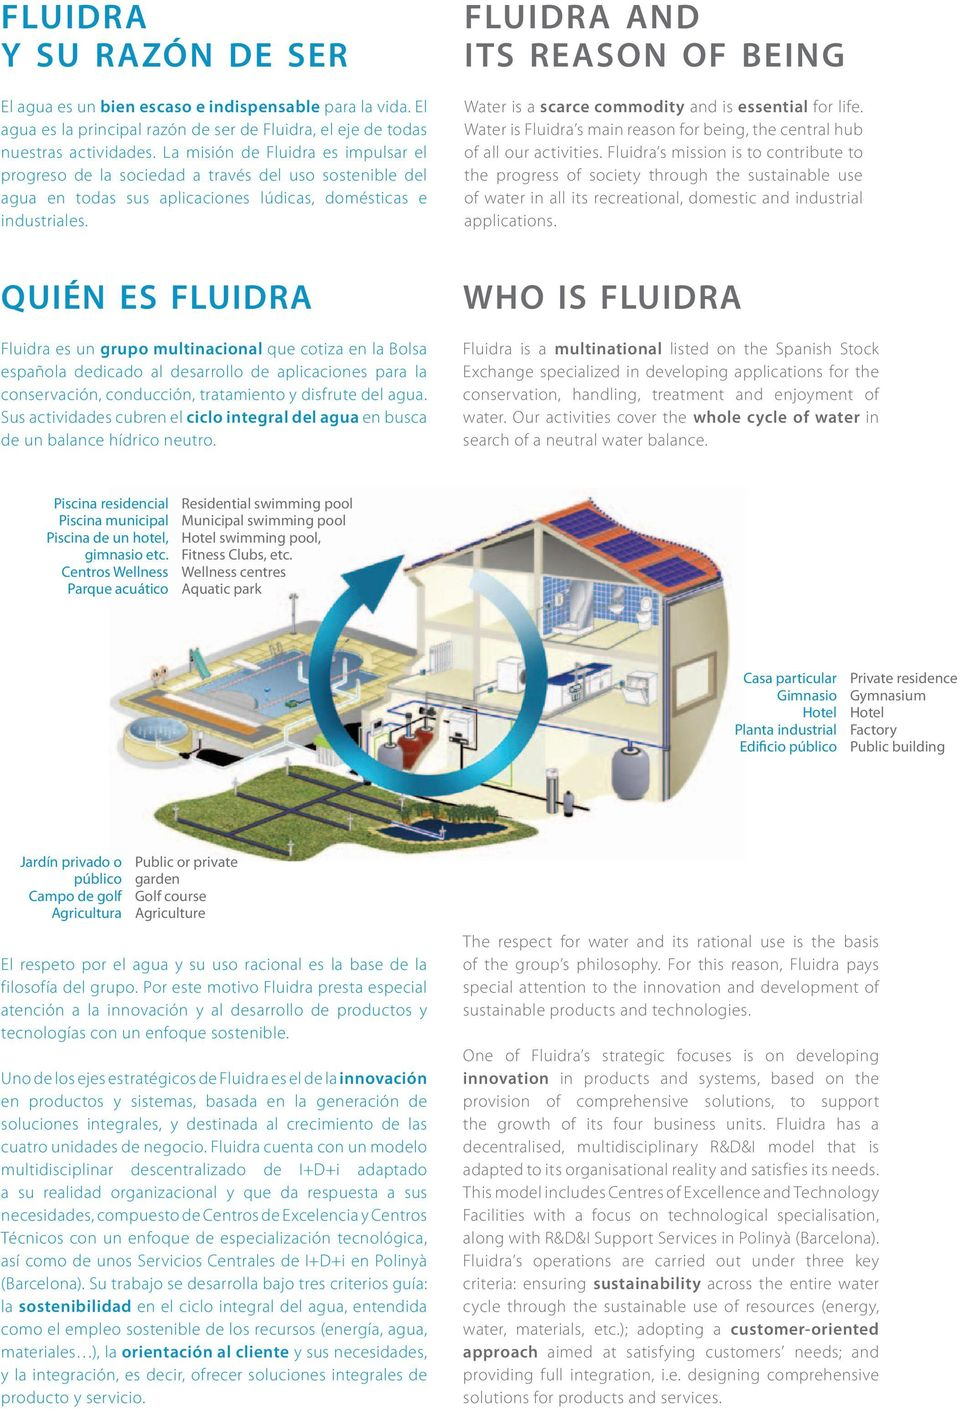 fluidra and its reason of being Water is a scarce commodity and is essential for life. Water is Fluidra s main reason for being, the central hub of all our activities.